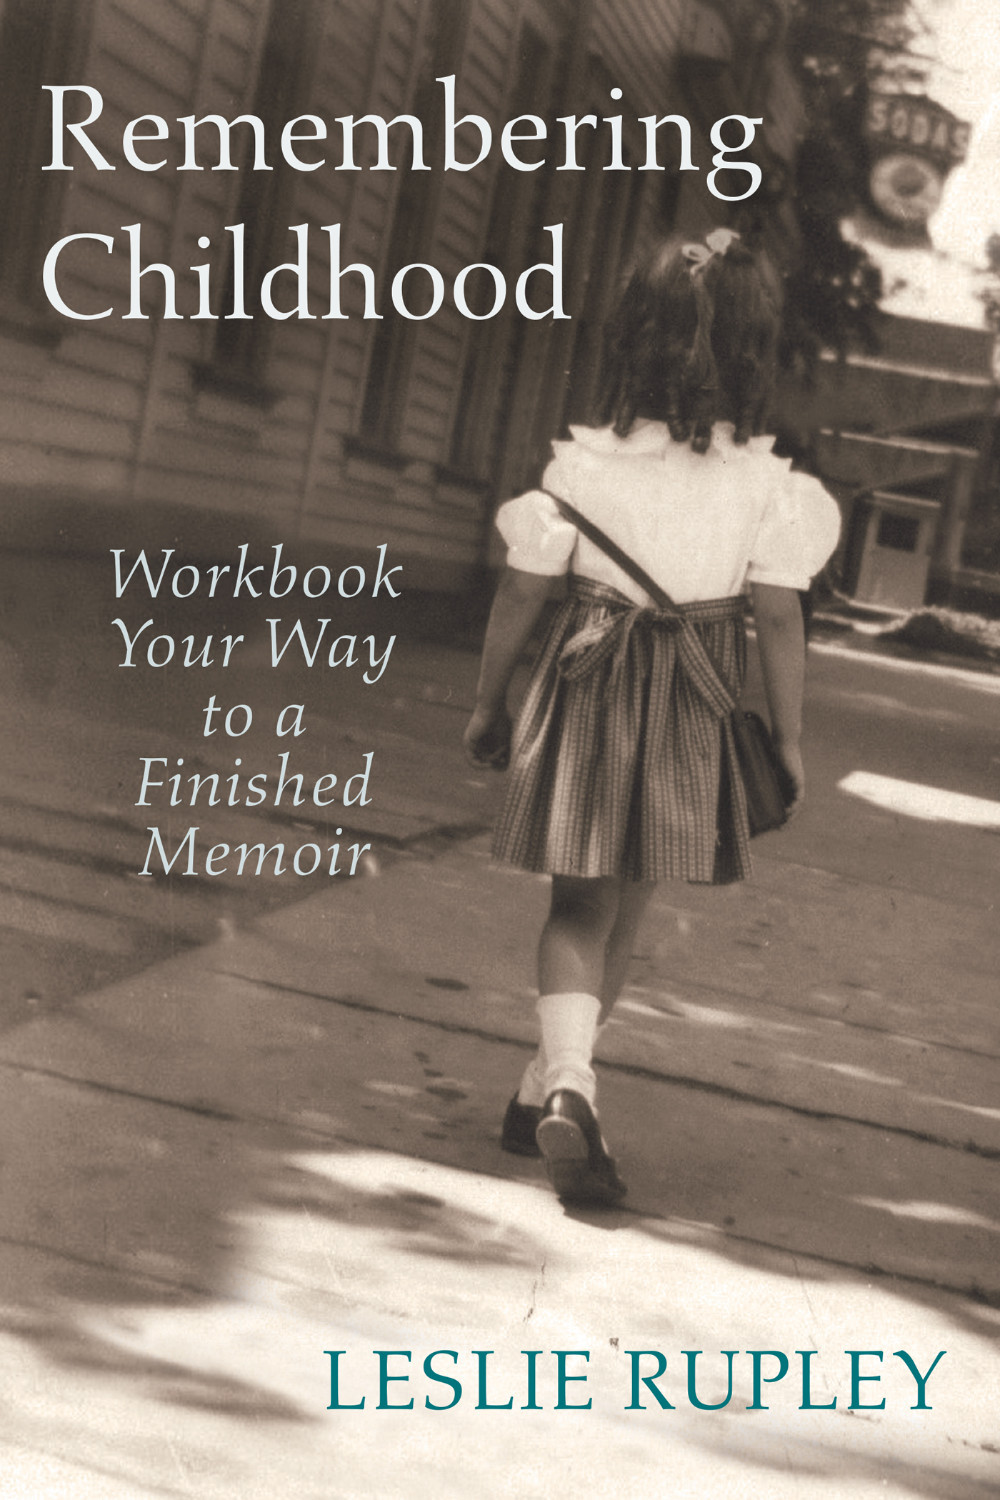 LR_RemberingChildhood_Cover_FINAL_NewTitle_7116_Web_1400wide_559-120.jpg